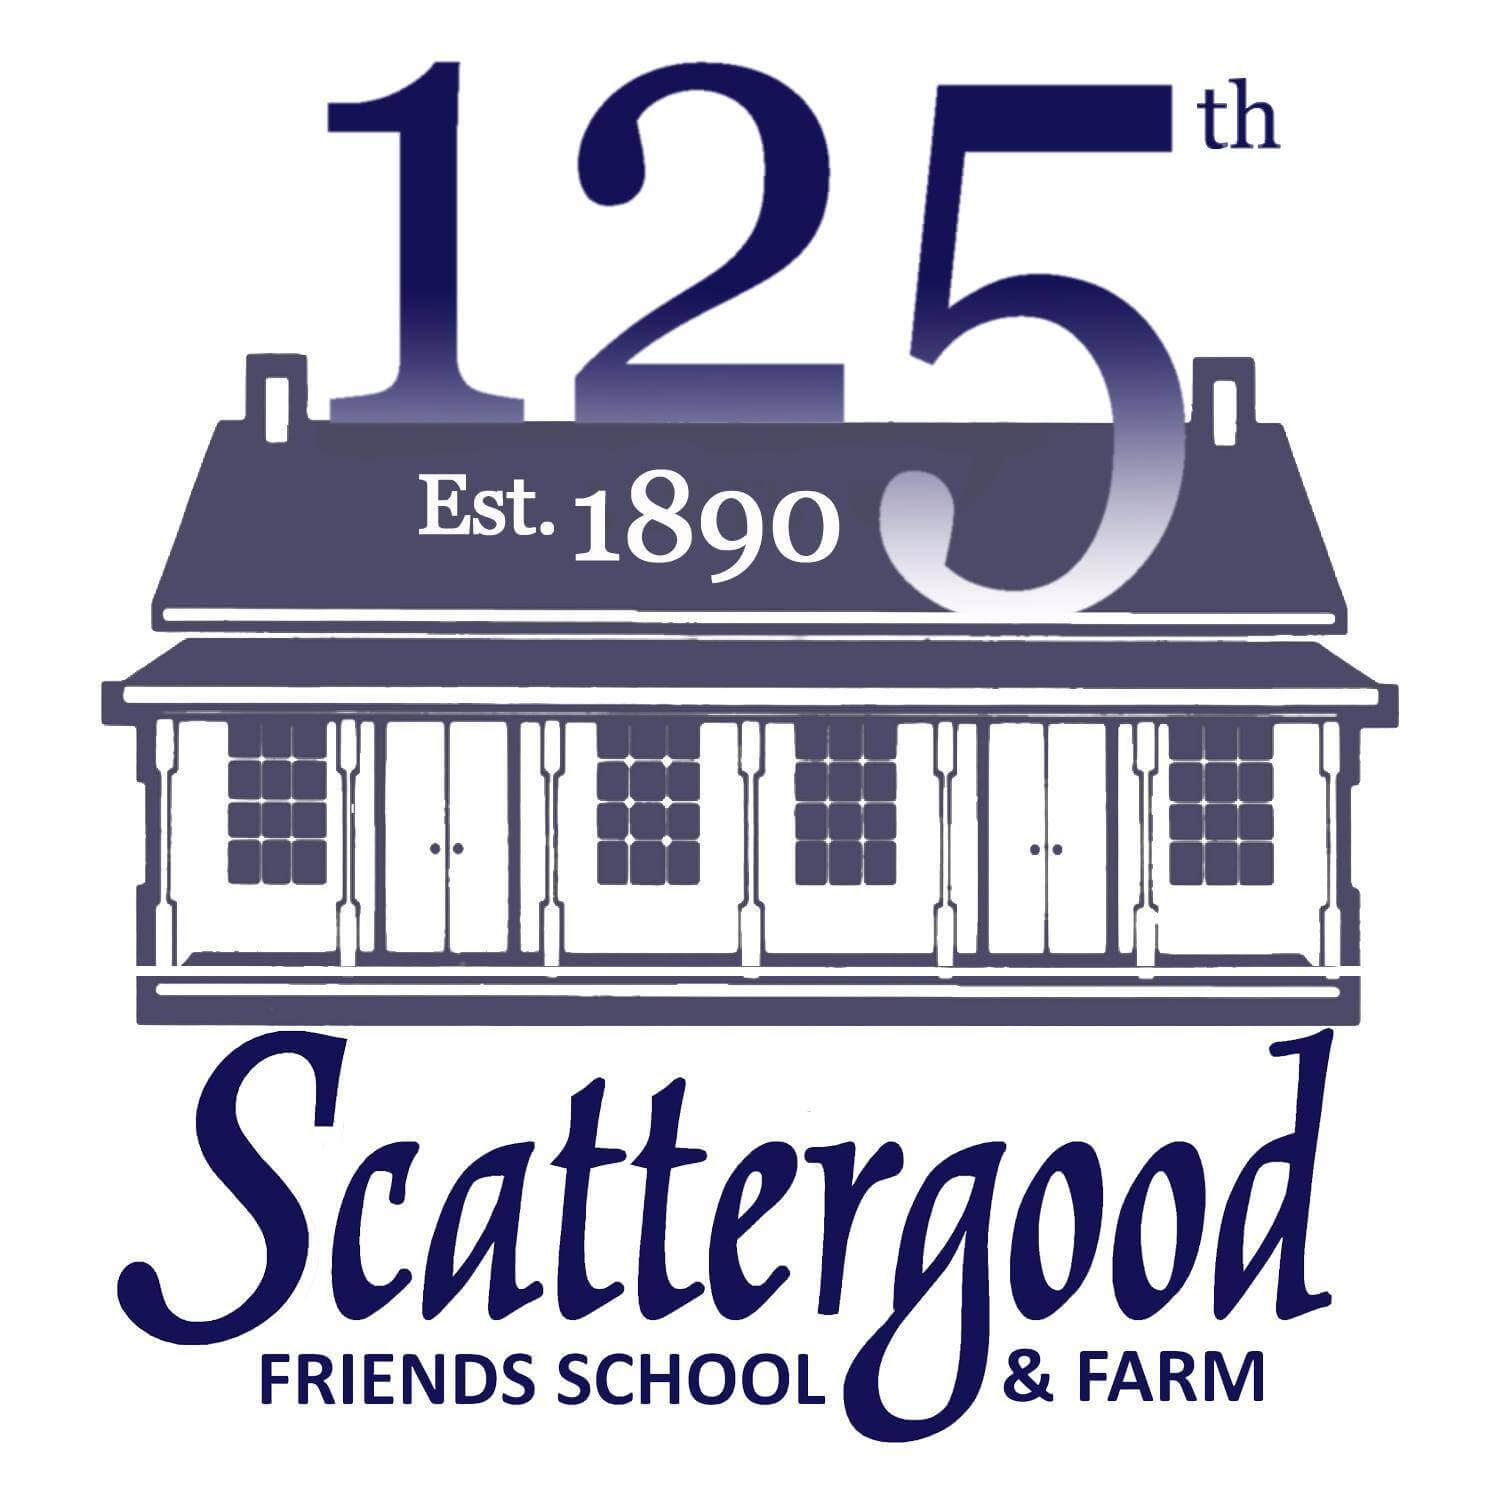 Scattergood Friends School Logo